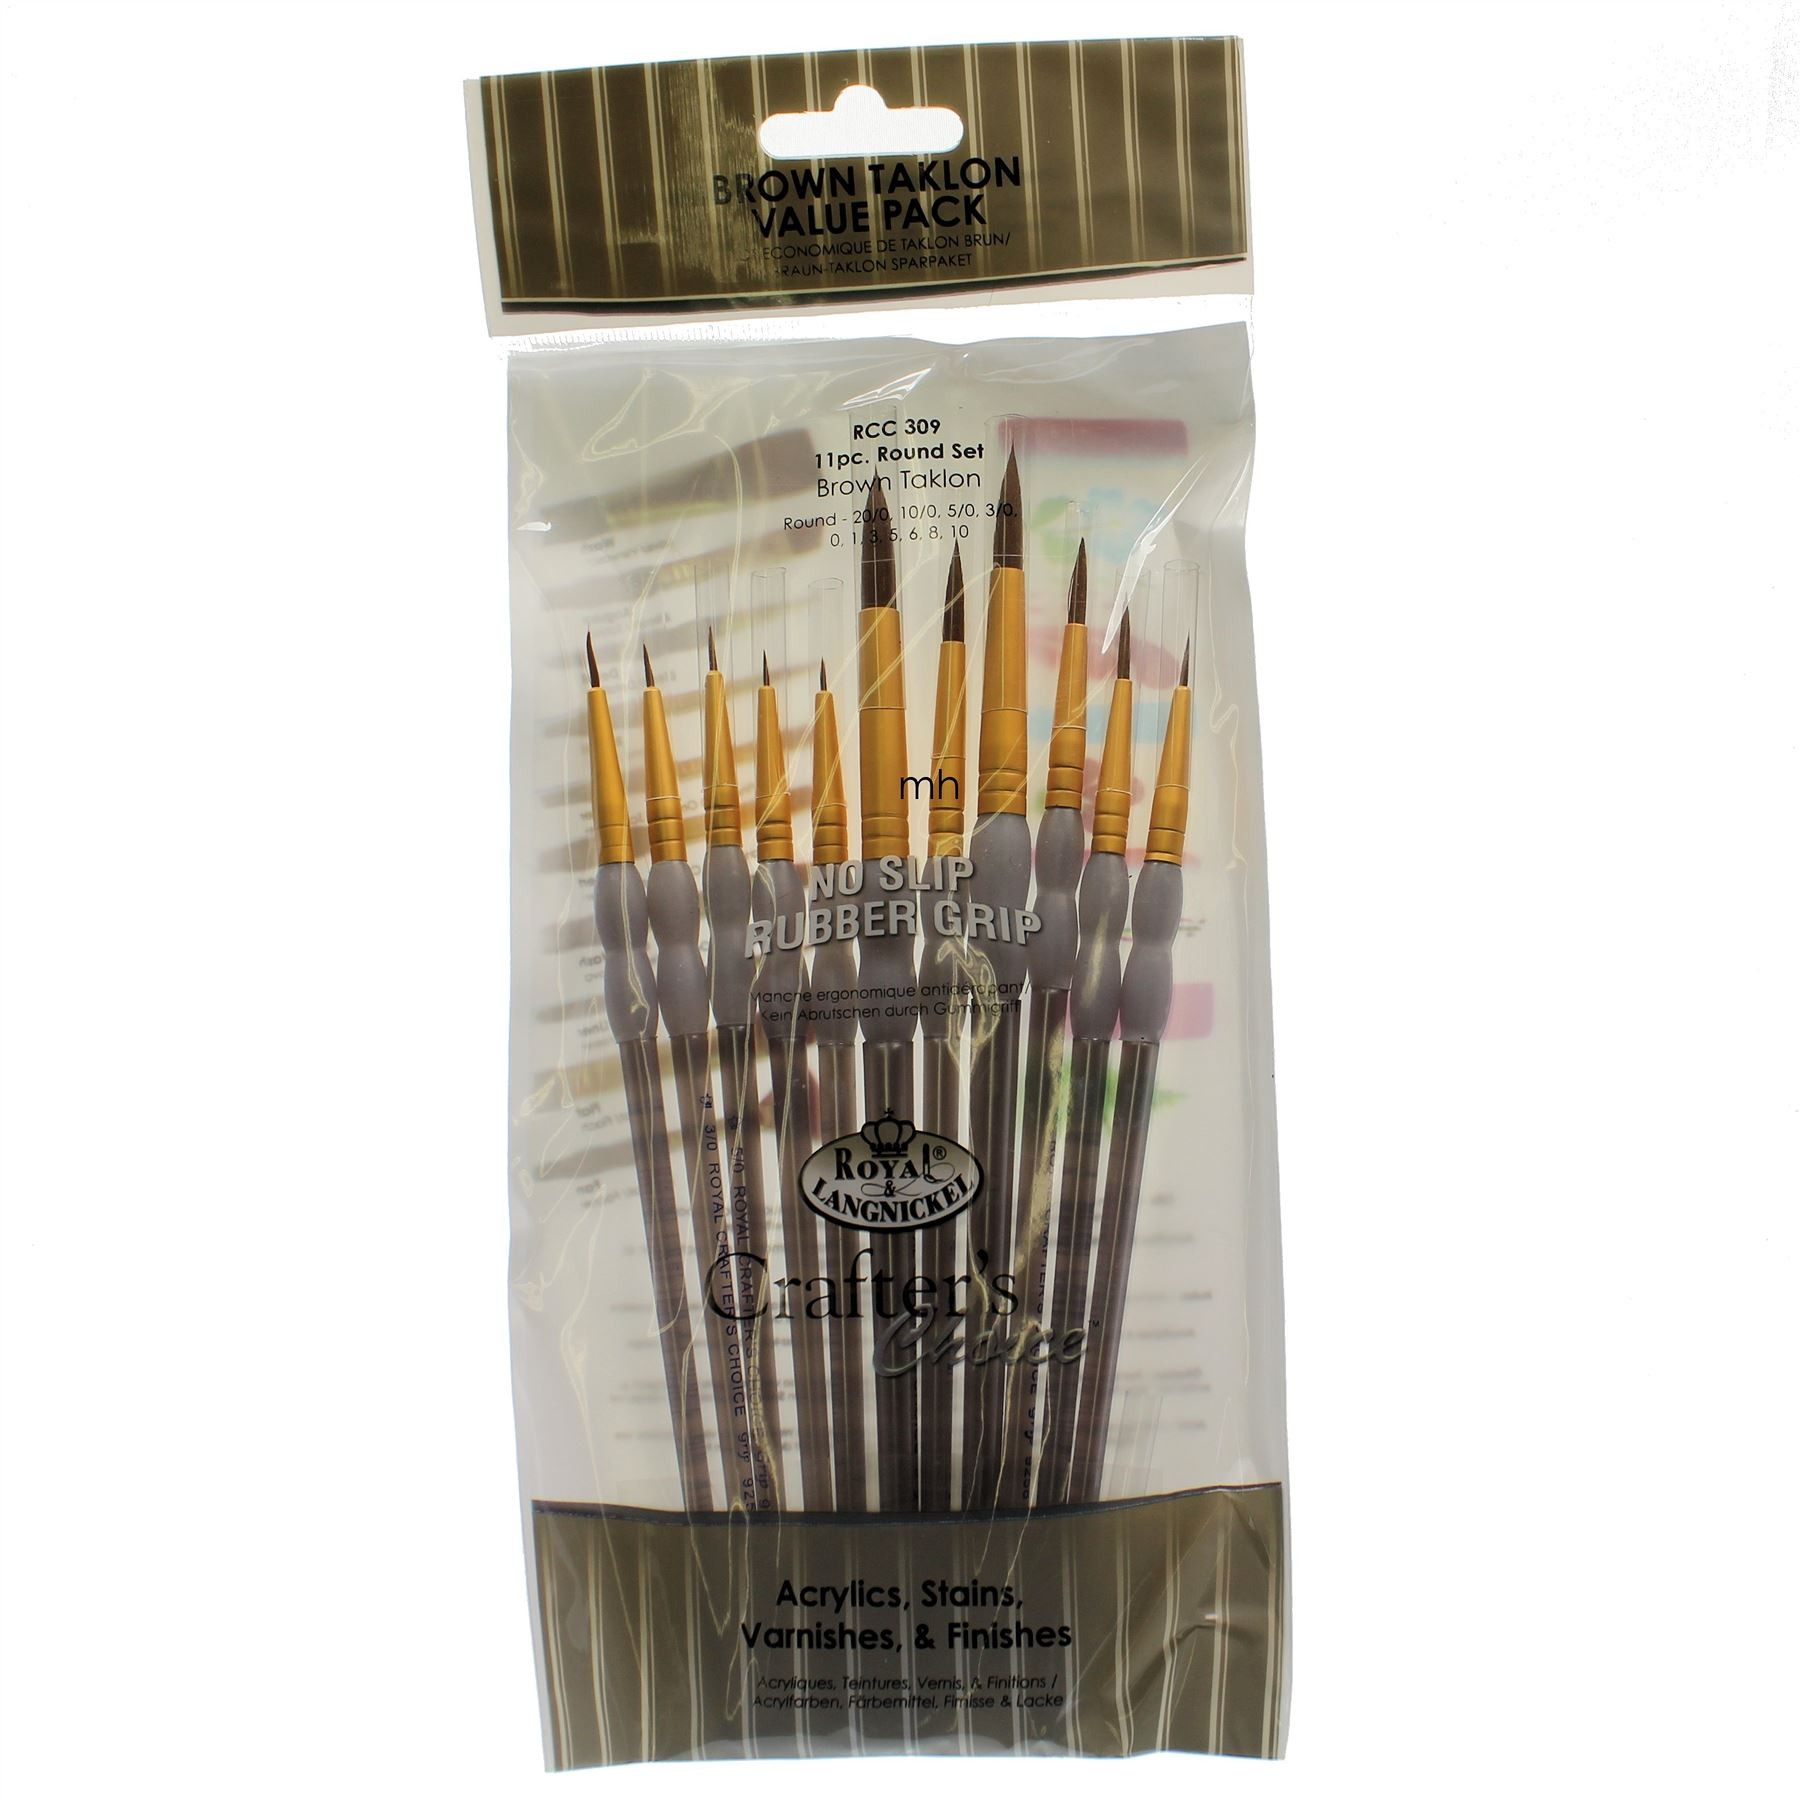 RCC-309 Brown taklon large pack artists pant brushes